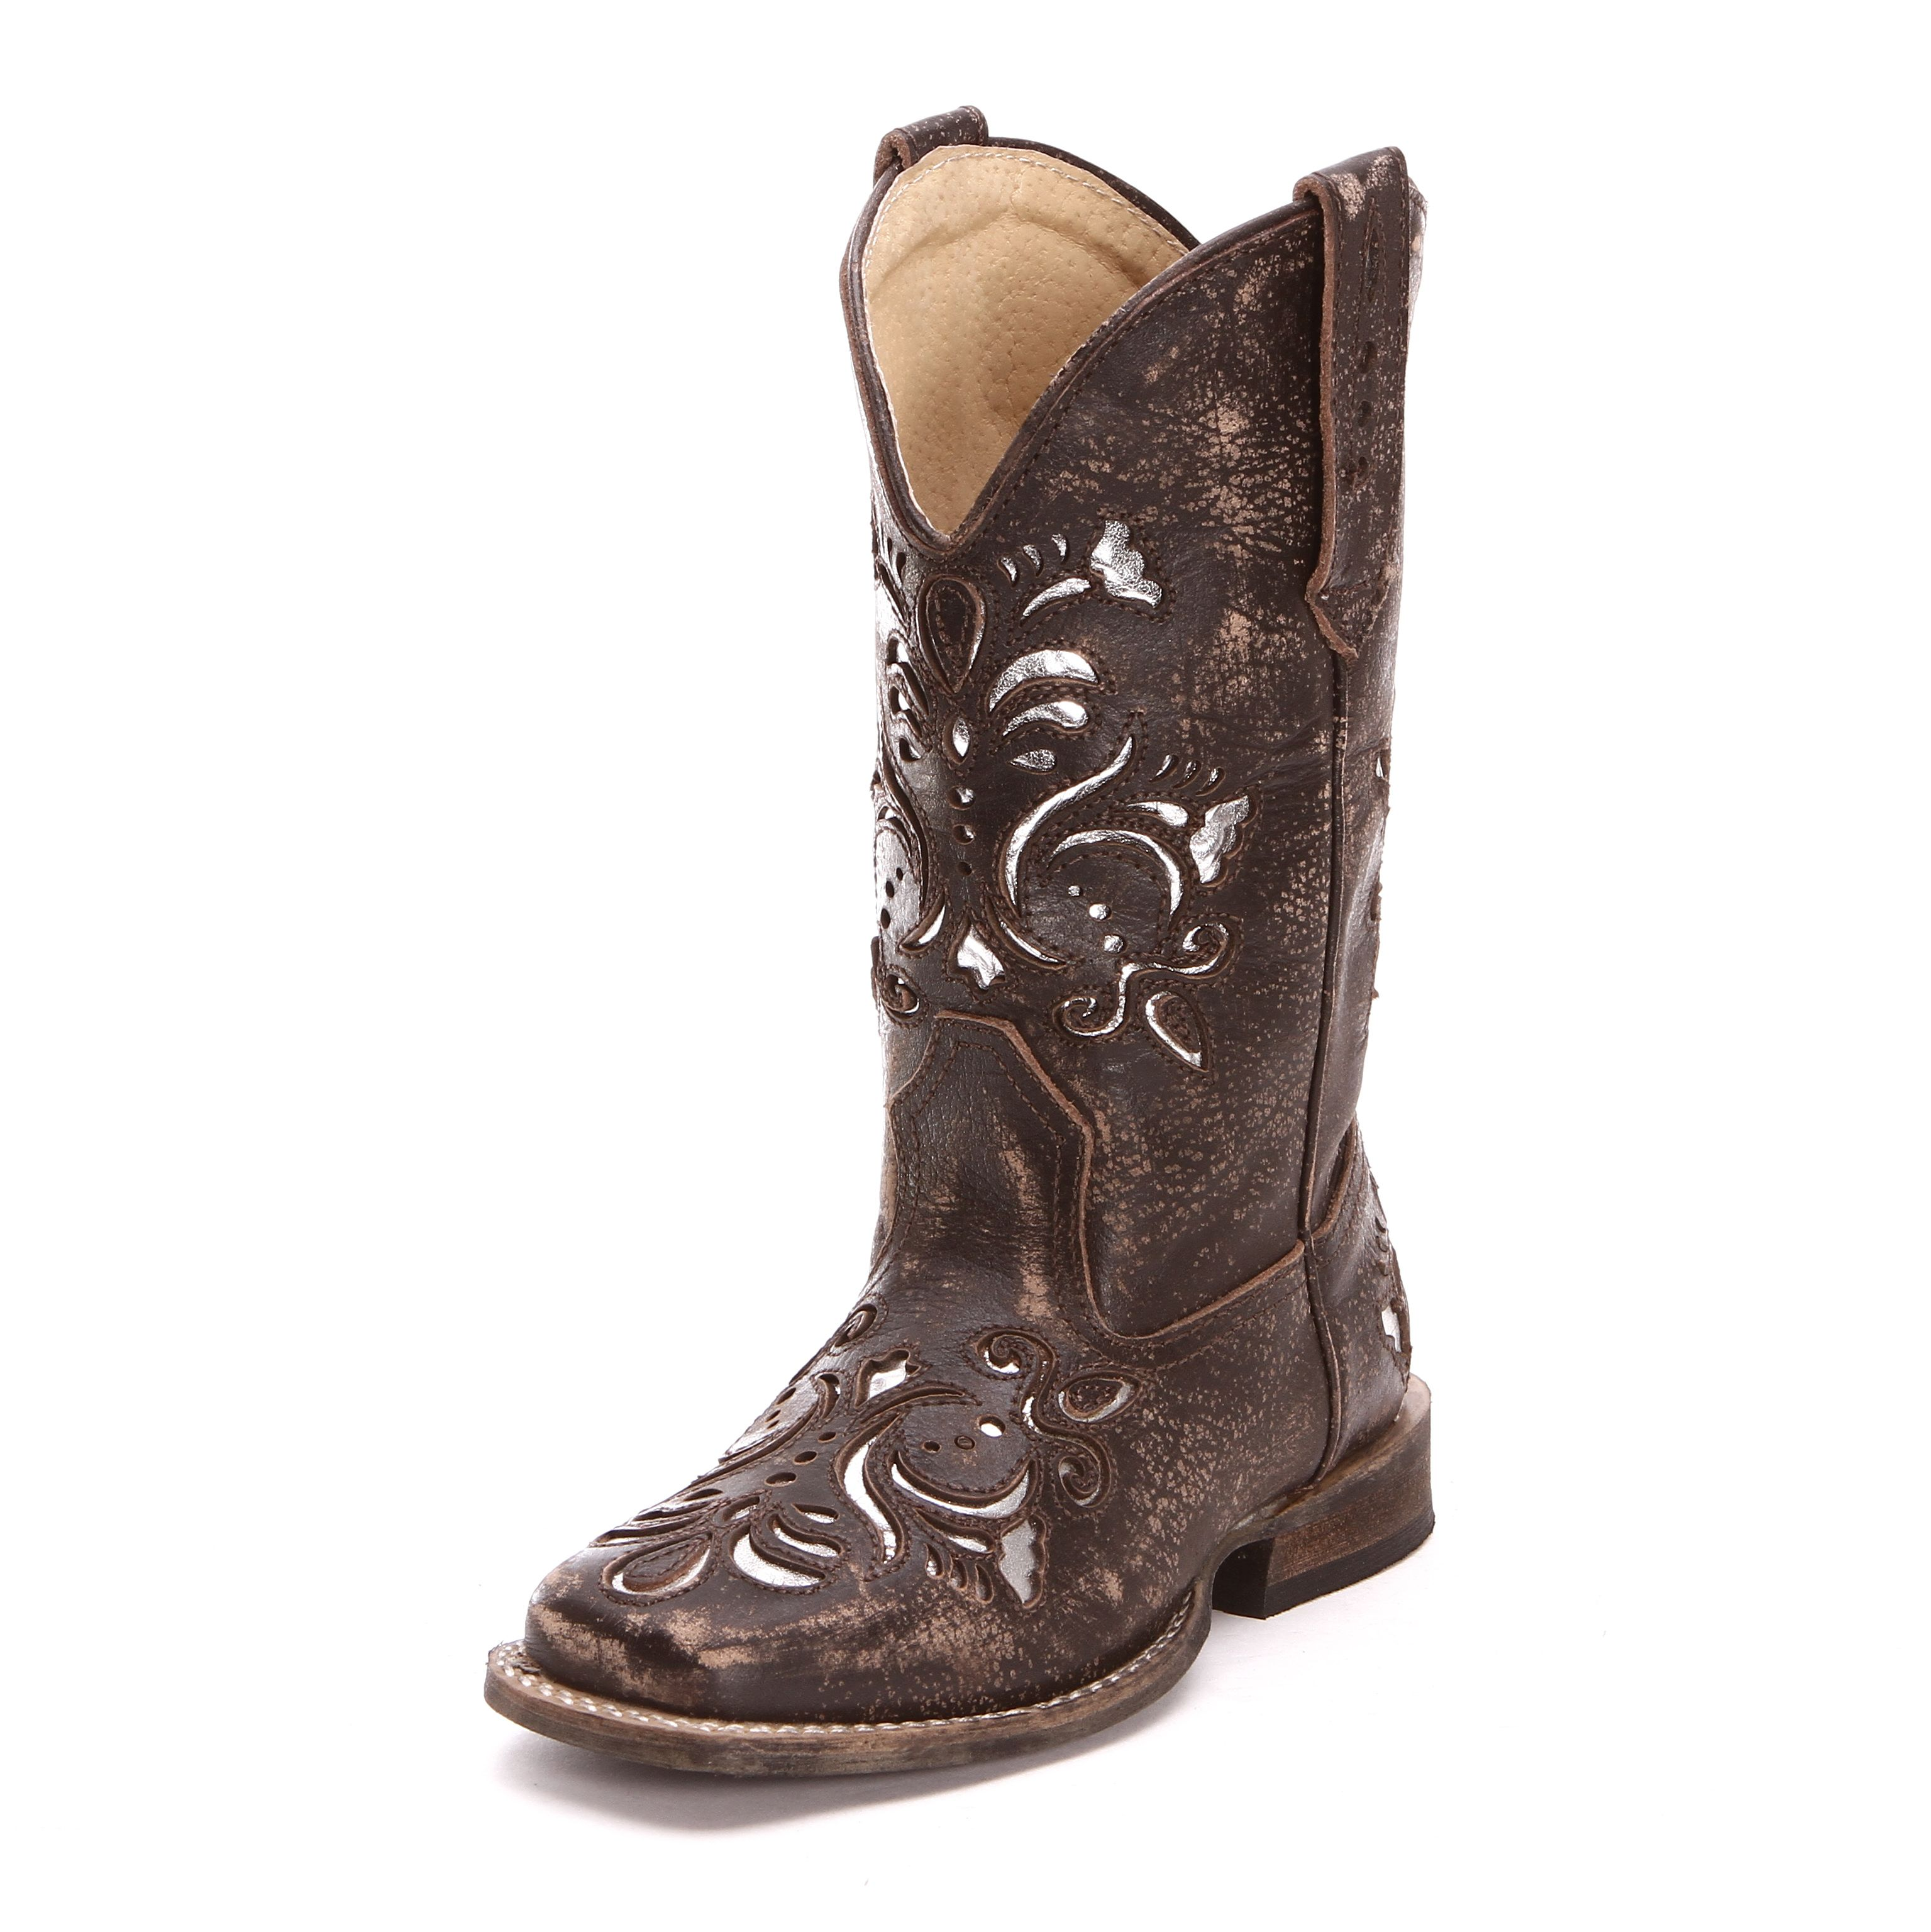 1528c998b7 Roper Childrens Girls Inlay Square Toe Cowboy Boots Brown | kids ...